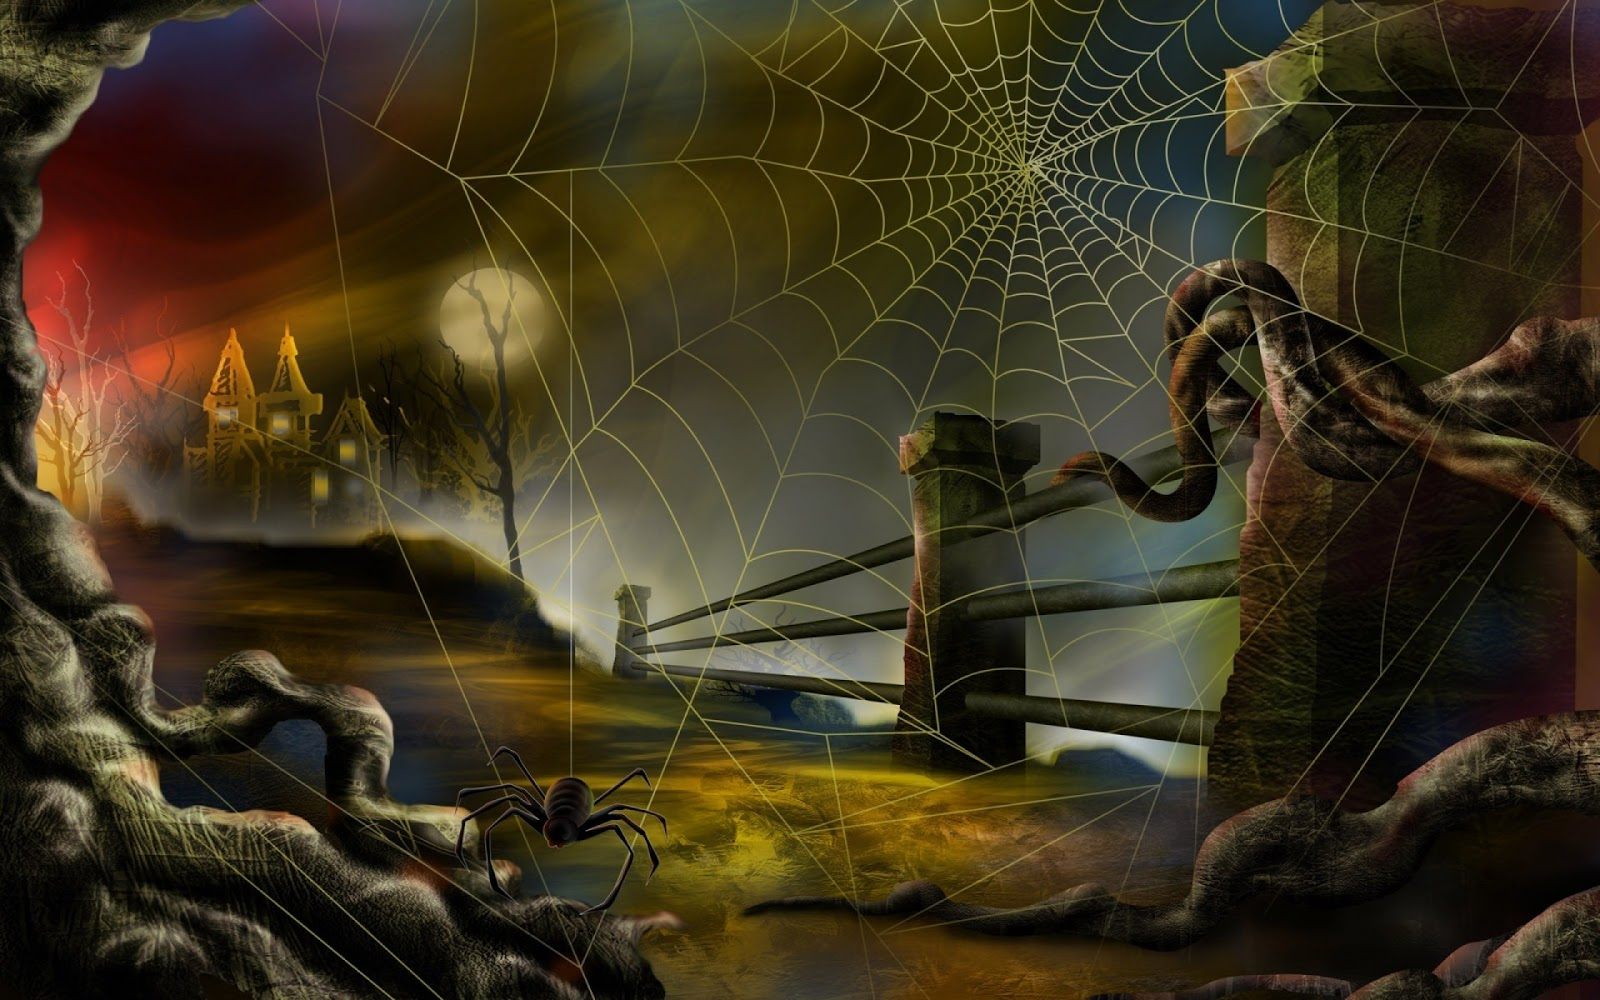 halloween background backgrounds - photo #34